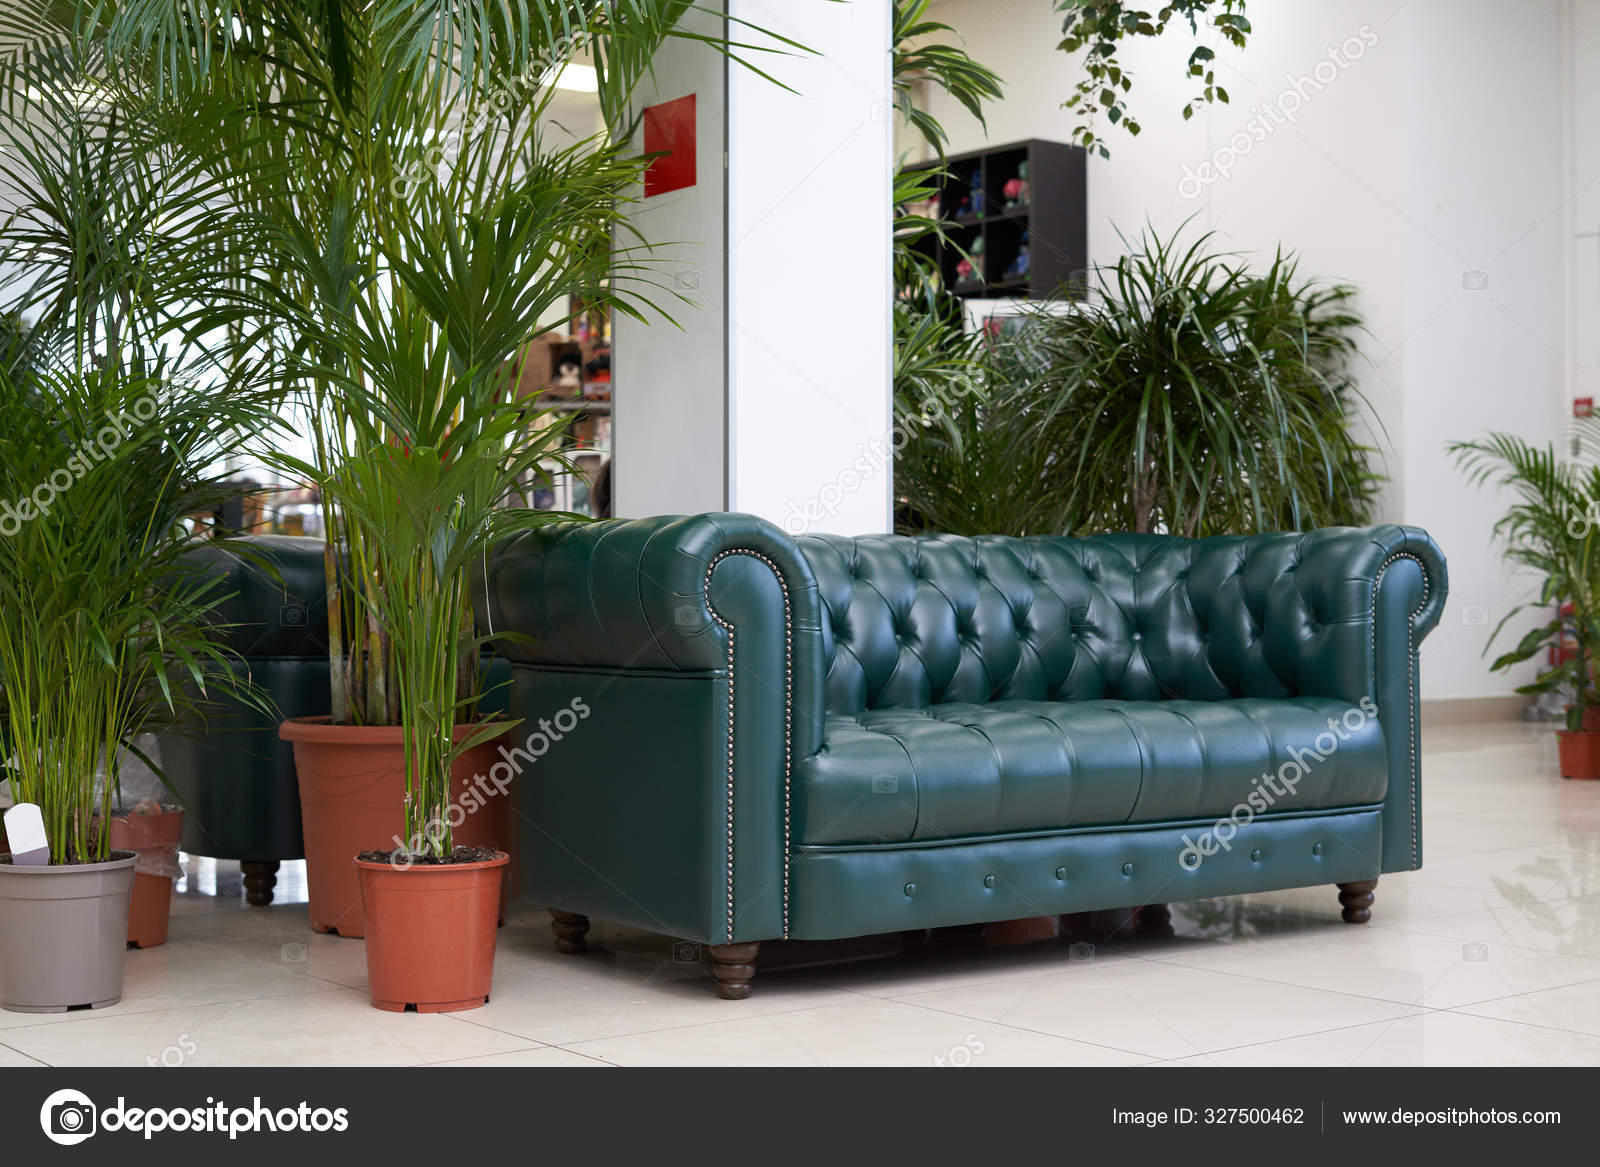 Place Relax Waiting Area Chester Leather Green Sofa Large Indoor Stock Photo C Iceberg Dp 327500462